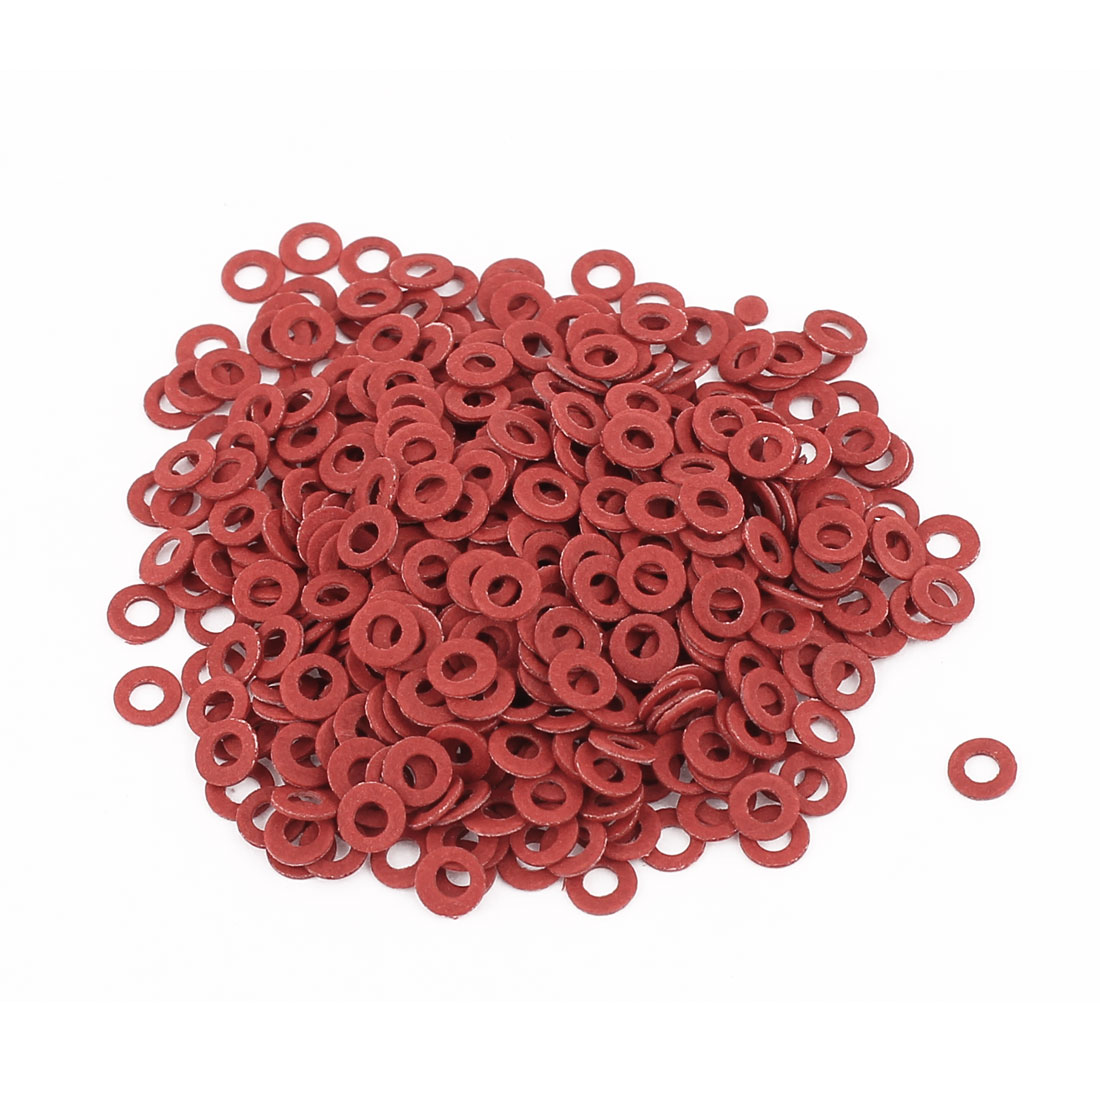 Fiber Flat Insulating Washer Ring 2mmx4mmx0.5mm 500Pcs Red for Screws